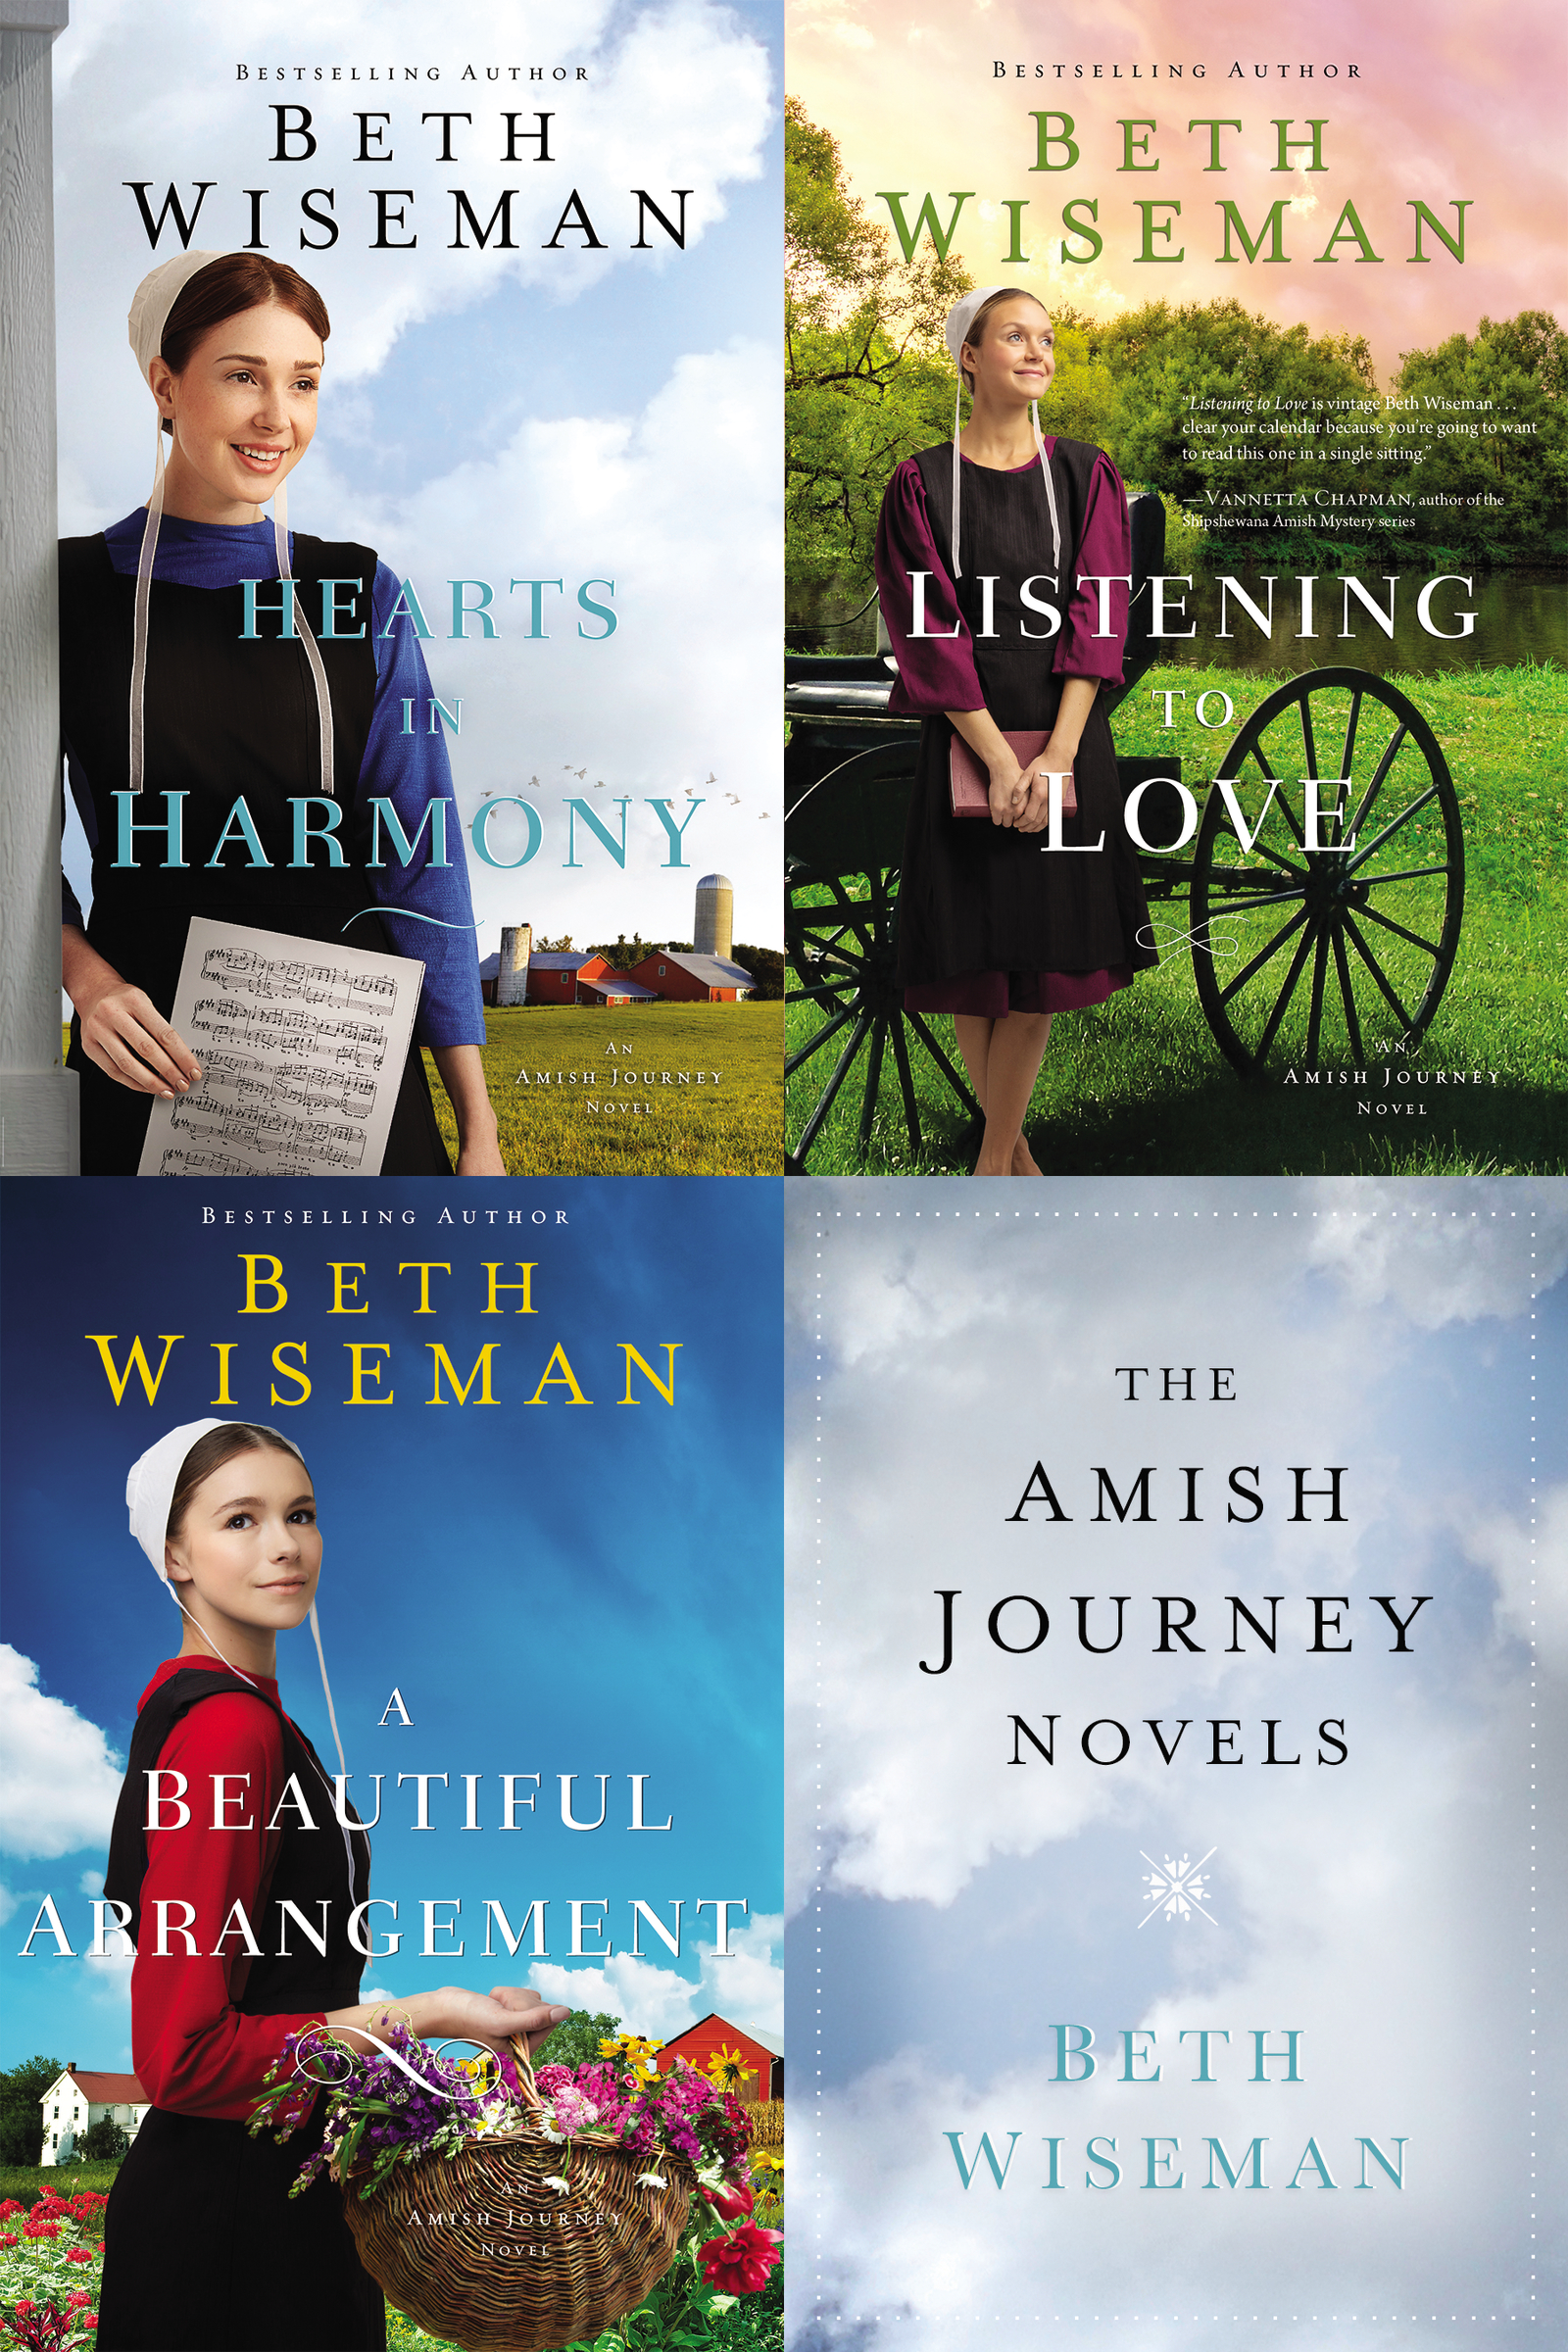 The Amish Journey Novels Hearts in Harmony, Listening to Love, A Beautiful Arrangement